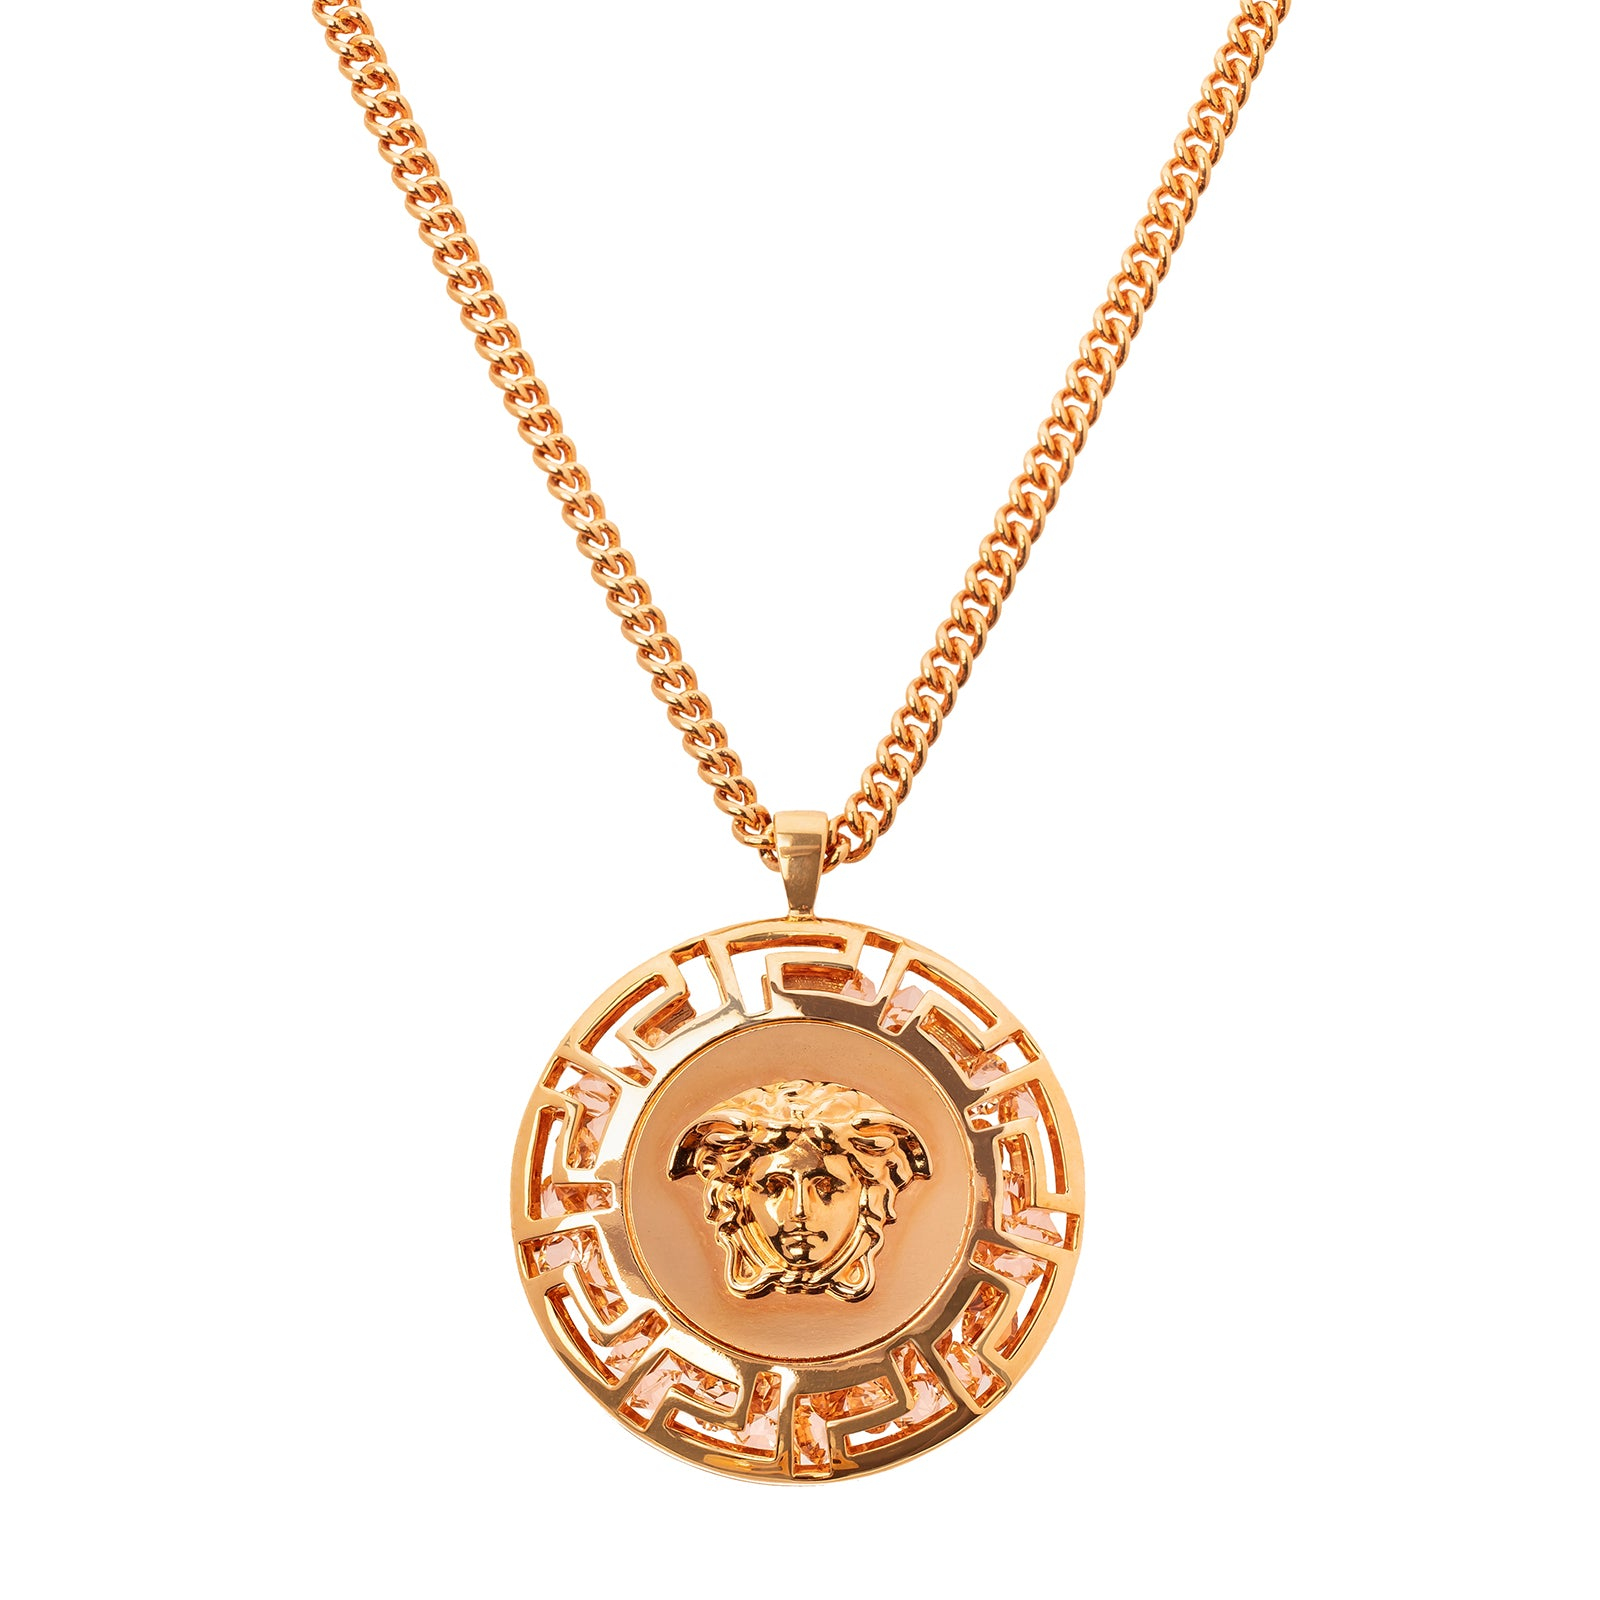 Antique & Vintage Jewelry Versace Gem Filled Medusa Pendant Necklace - Necklaces - Broken English Jewelry